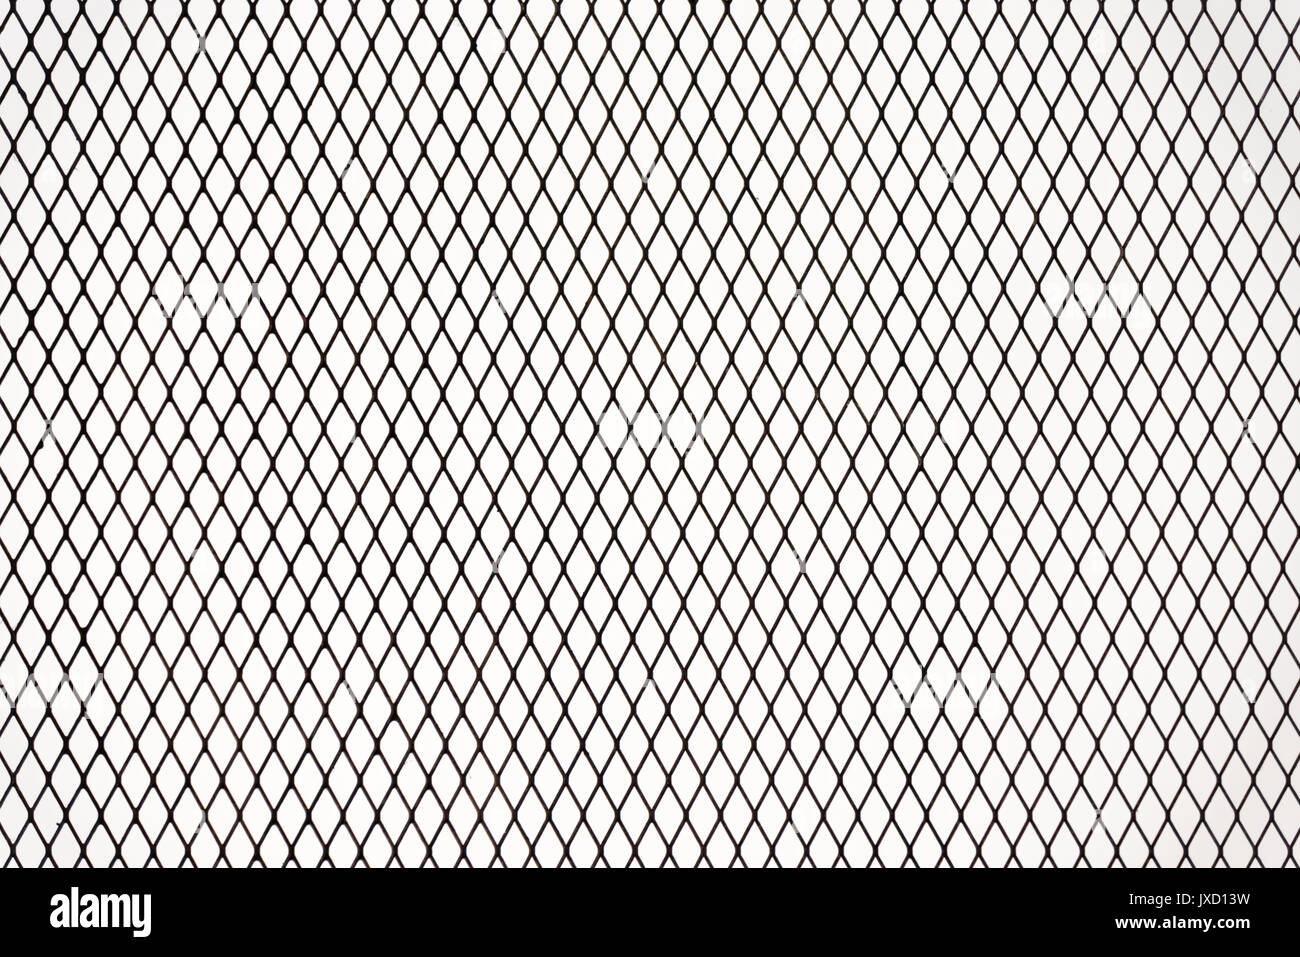 Safety Net And Isolated Background Stock Photos & Safety Net And ...